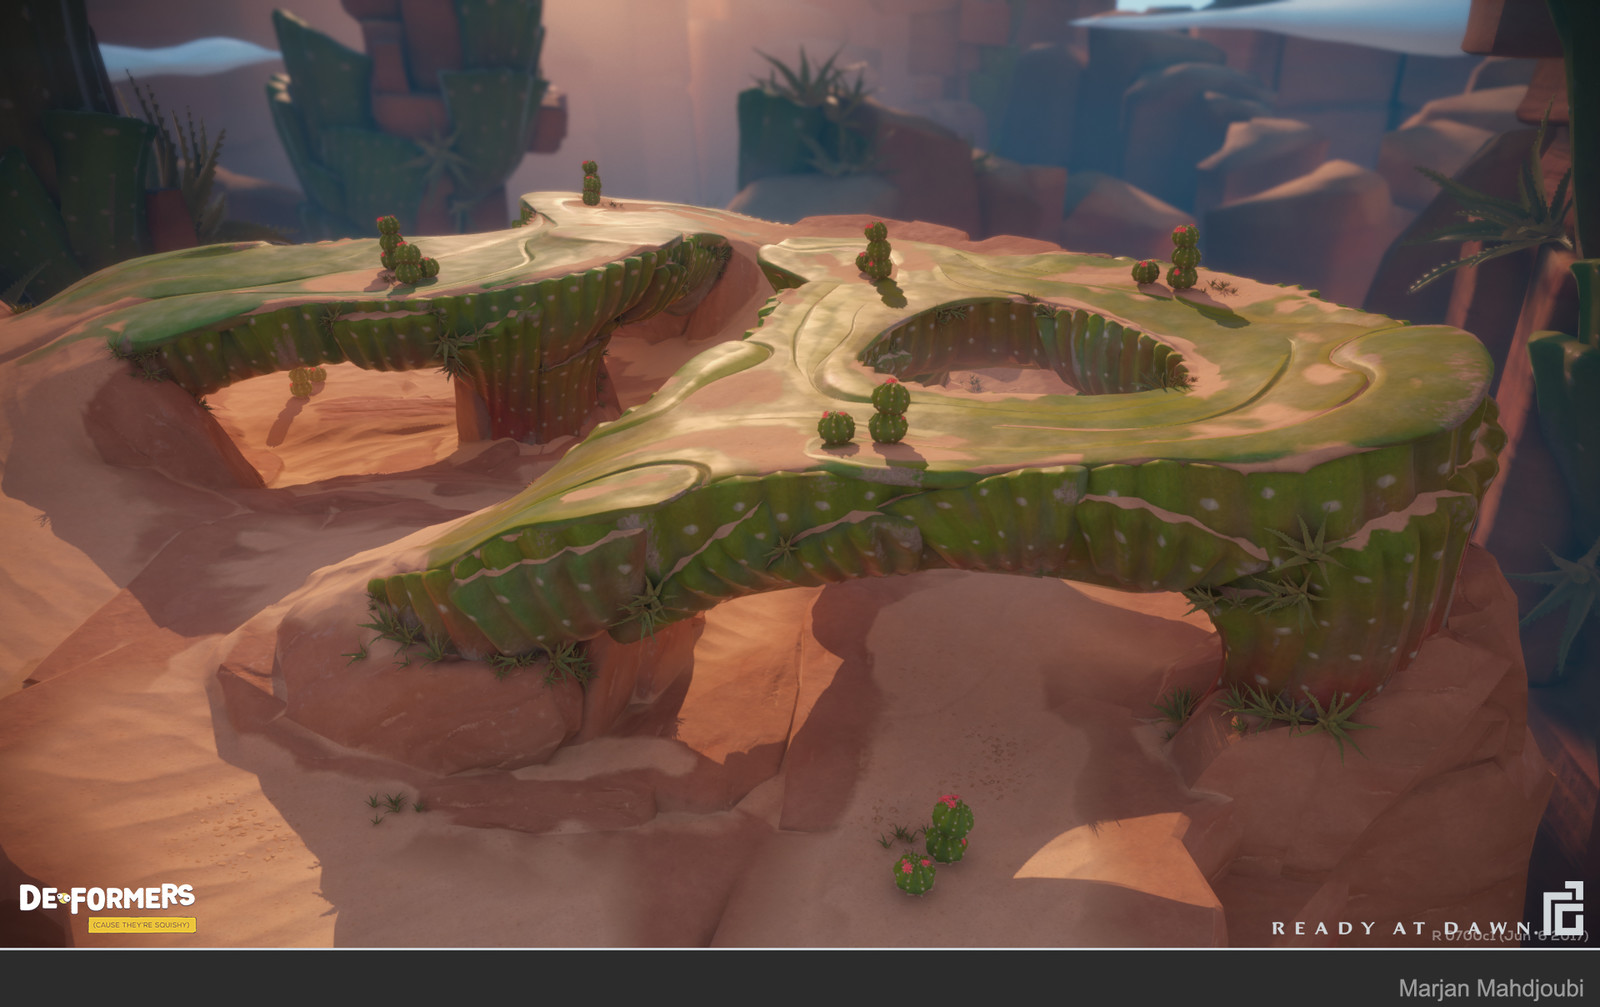 Prickly Peak Responsible For: Cactus Prop Model, Cactus wall stitching, Cactus floor, Clouds, Some Sand Skirts